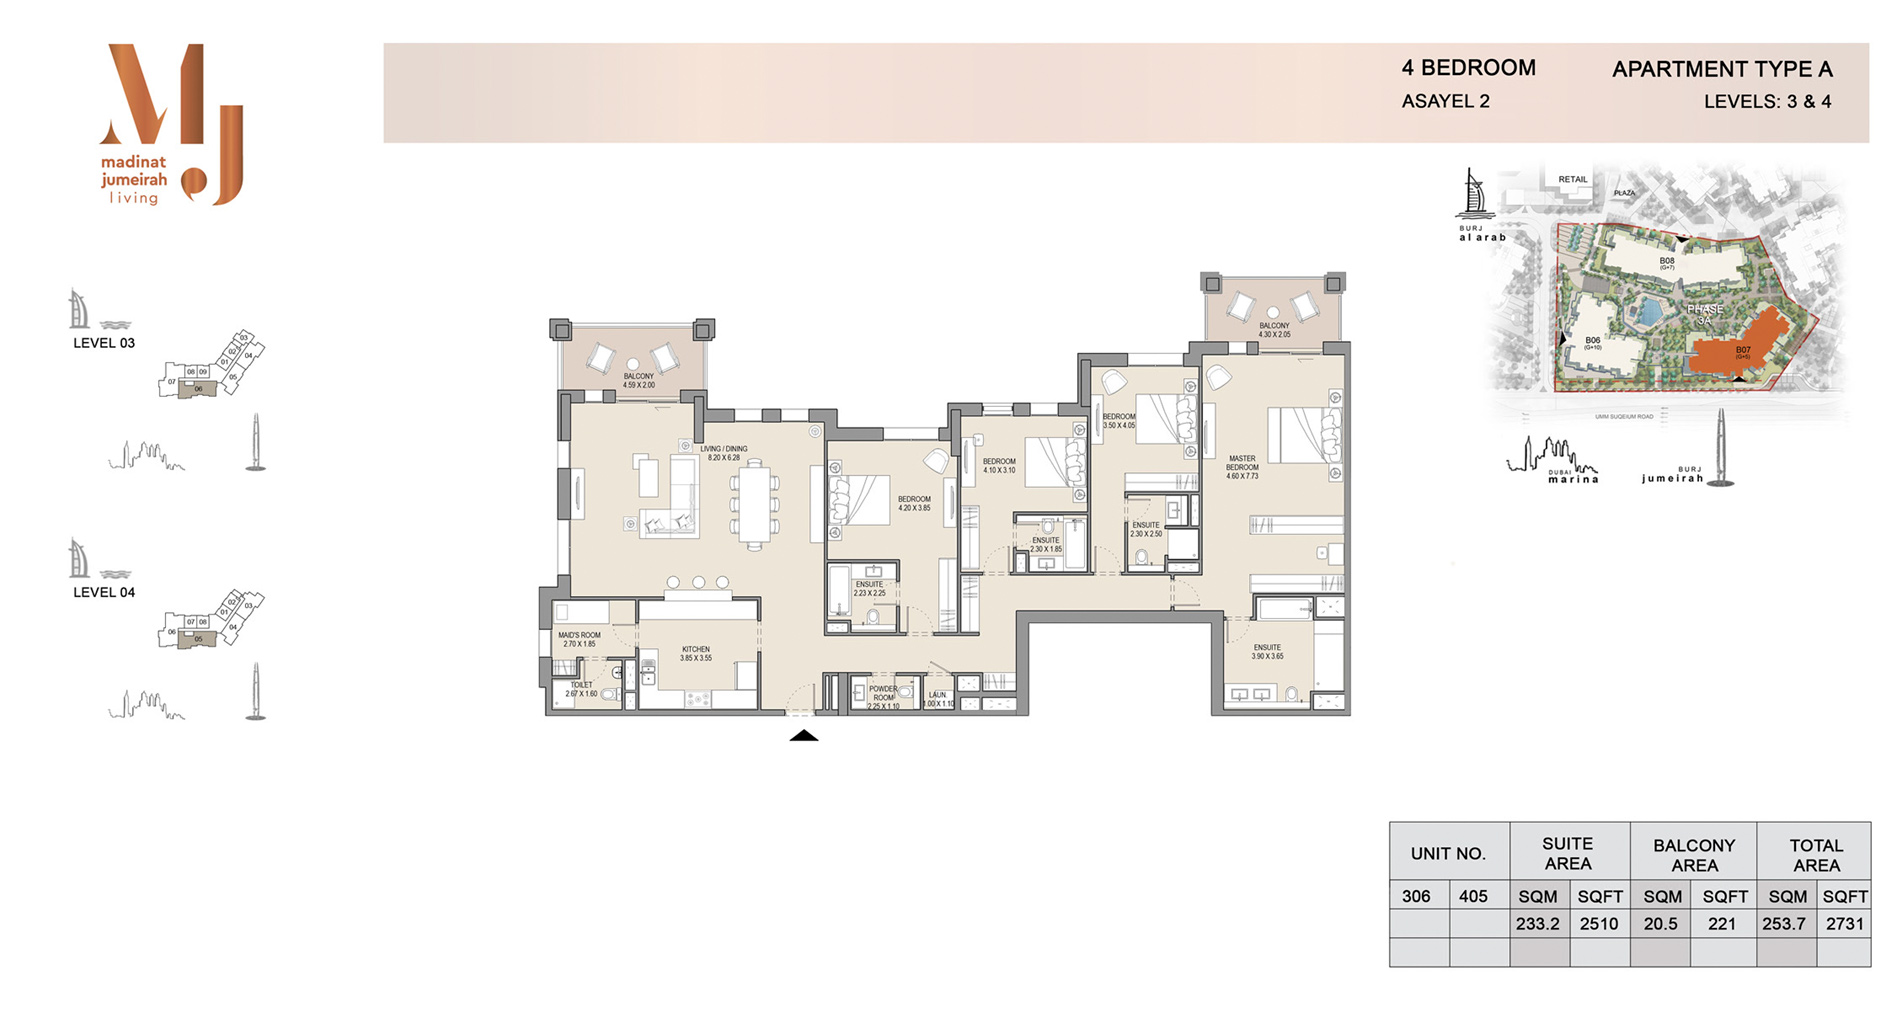 Building 2, 3 Bed Type A Level 3 to 4, Size 2731    sq. ft.